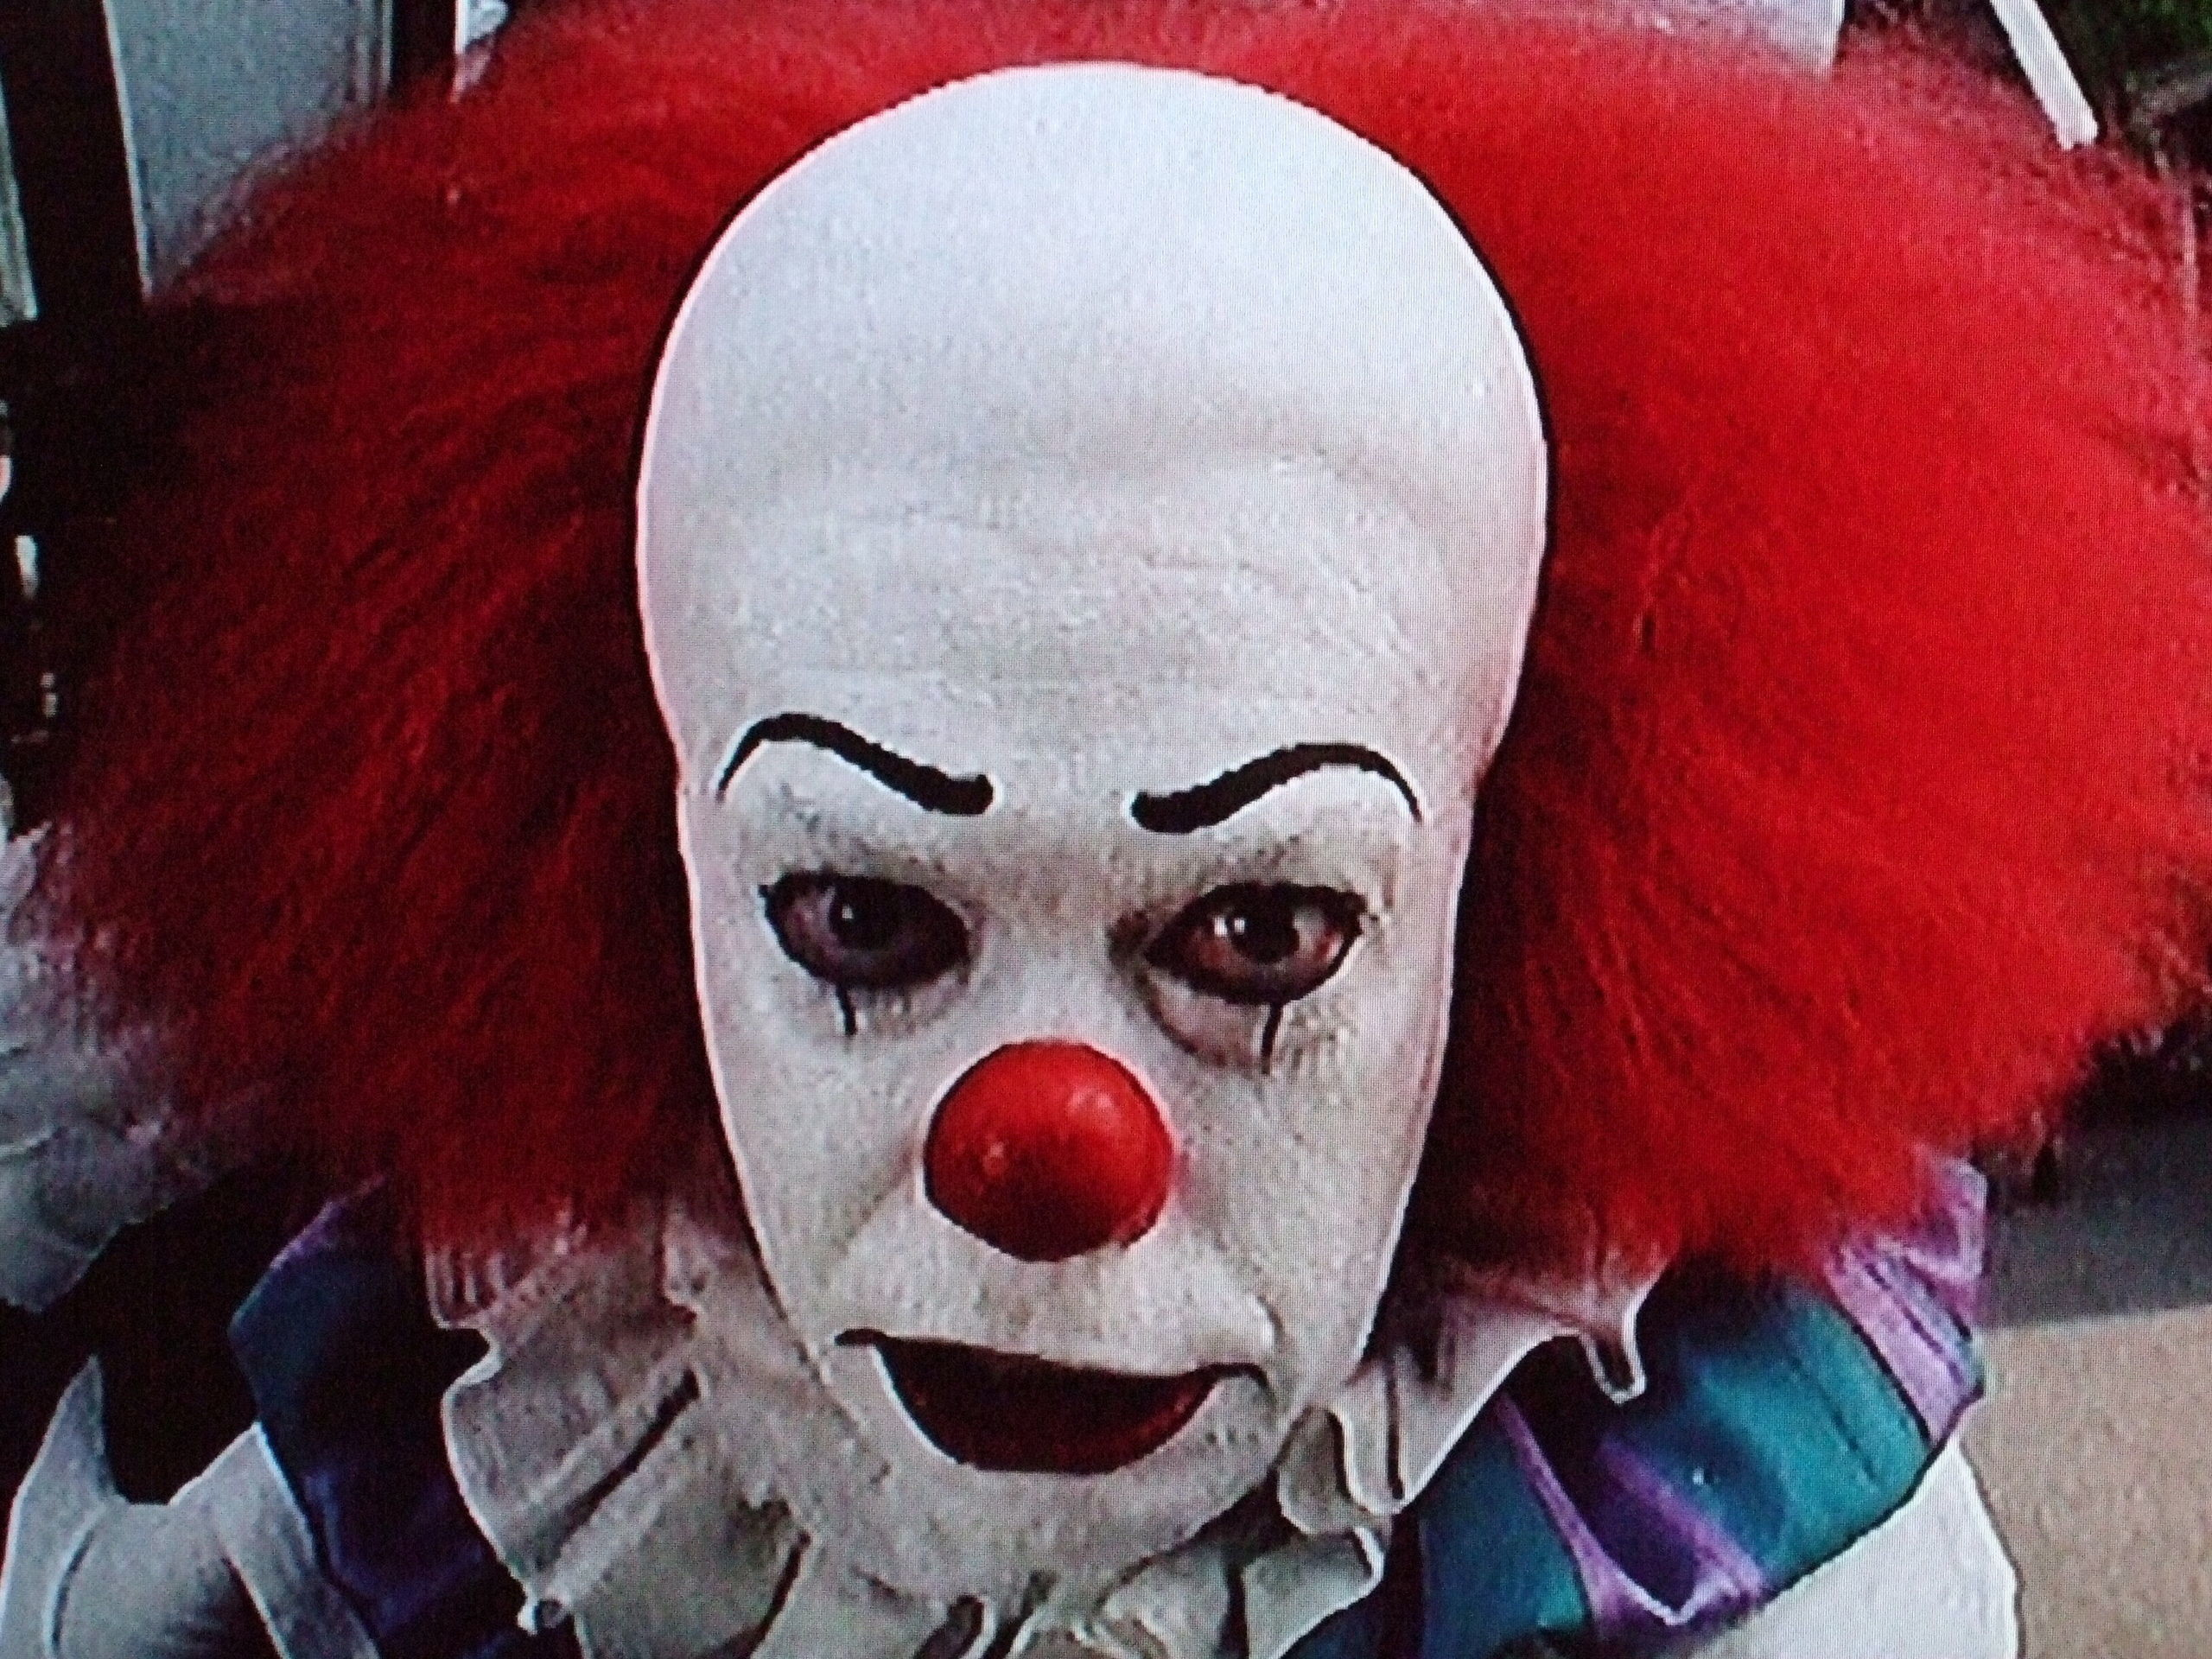 Pennywise The Clown Has Been Cast In Stephen King's It ..